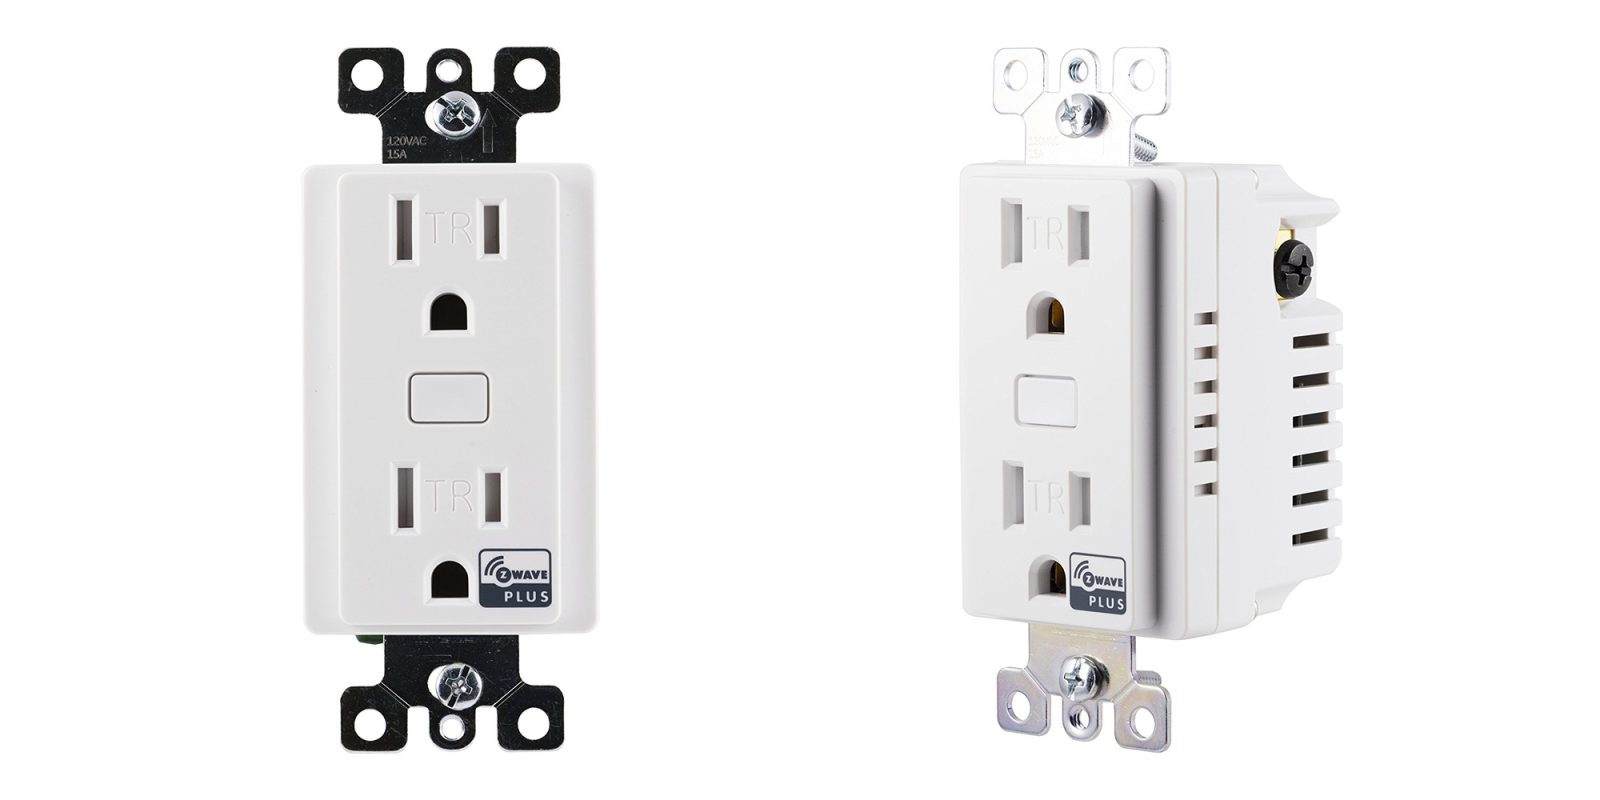 Ge S Z Wave Plus Smart In Wall Outlet Hits Amazon All Time